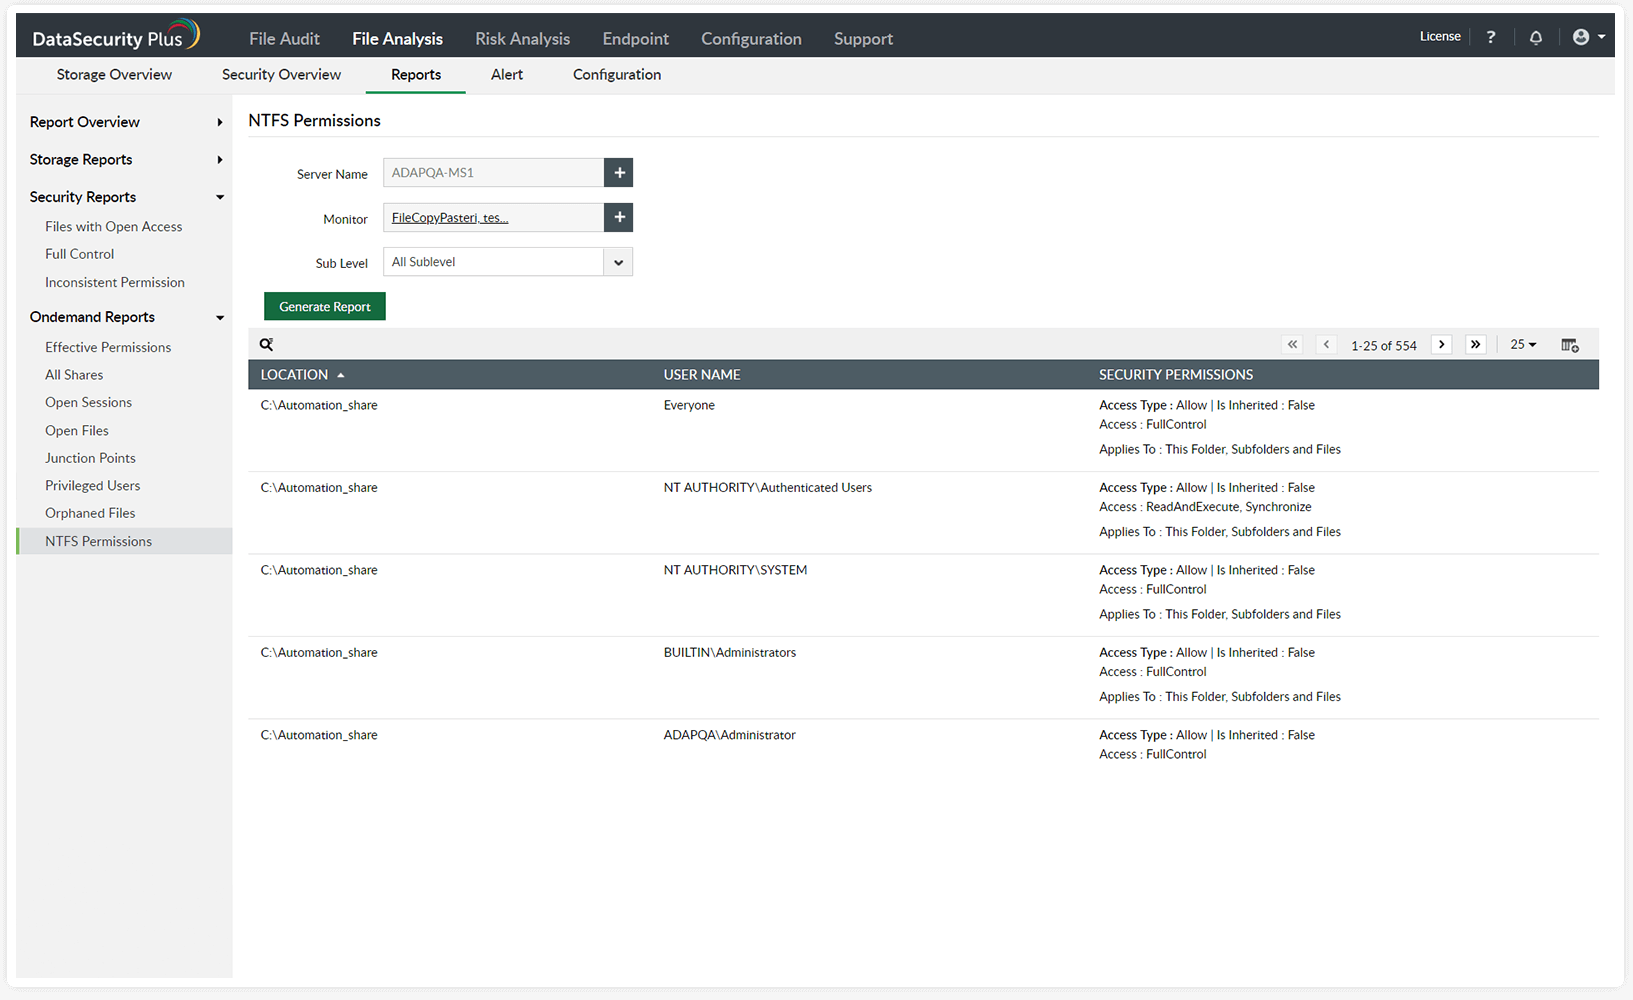 detailed permission audit reports